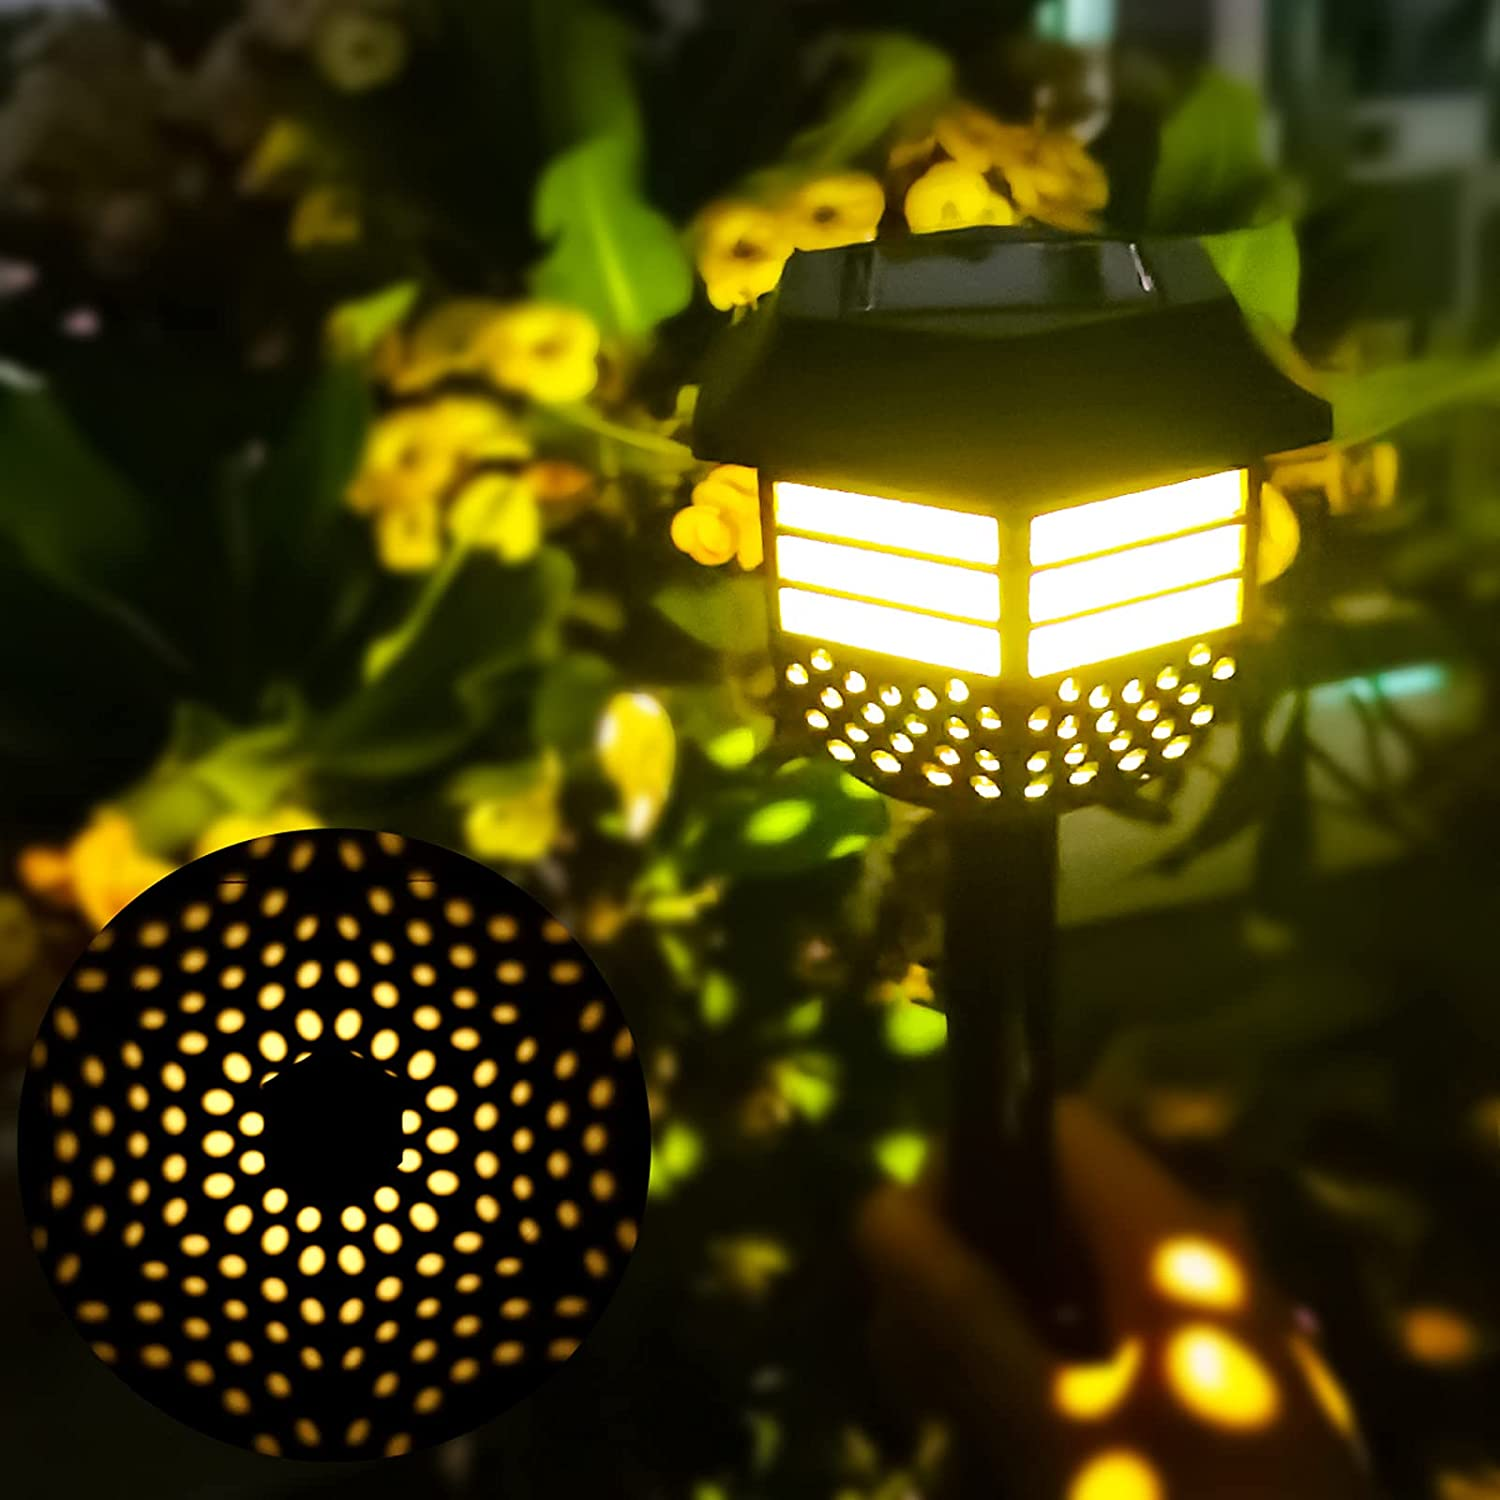 Kihoplly 2-Pack Outdoor Lighting Solar Pathway Lights  $9.98 Coupon